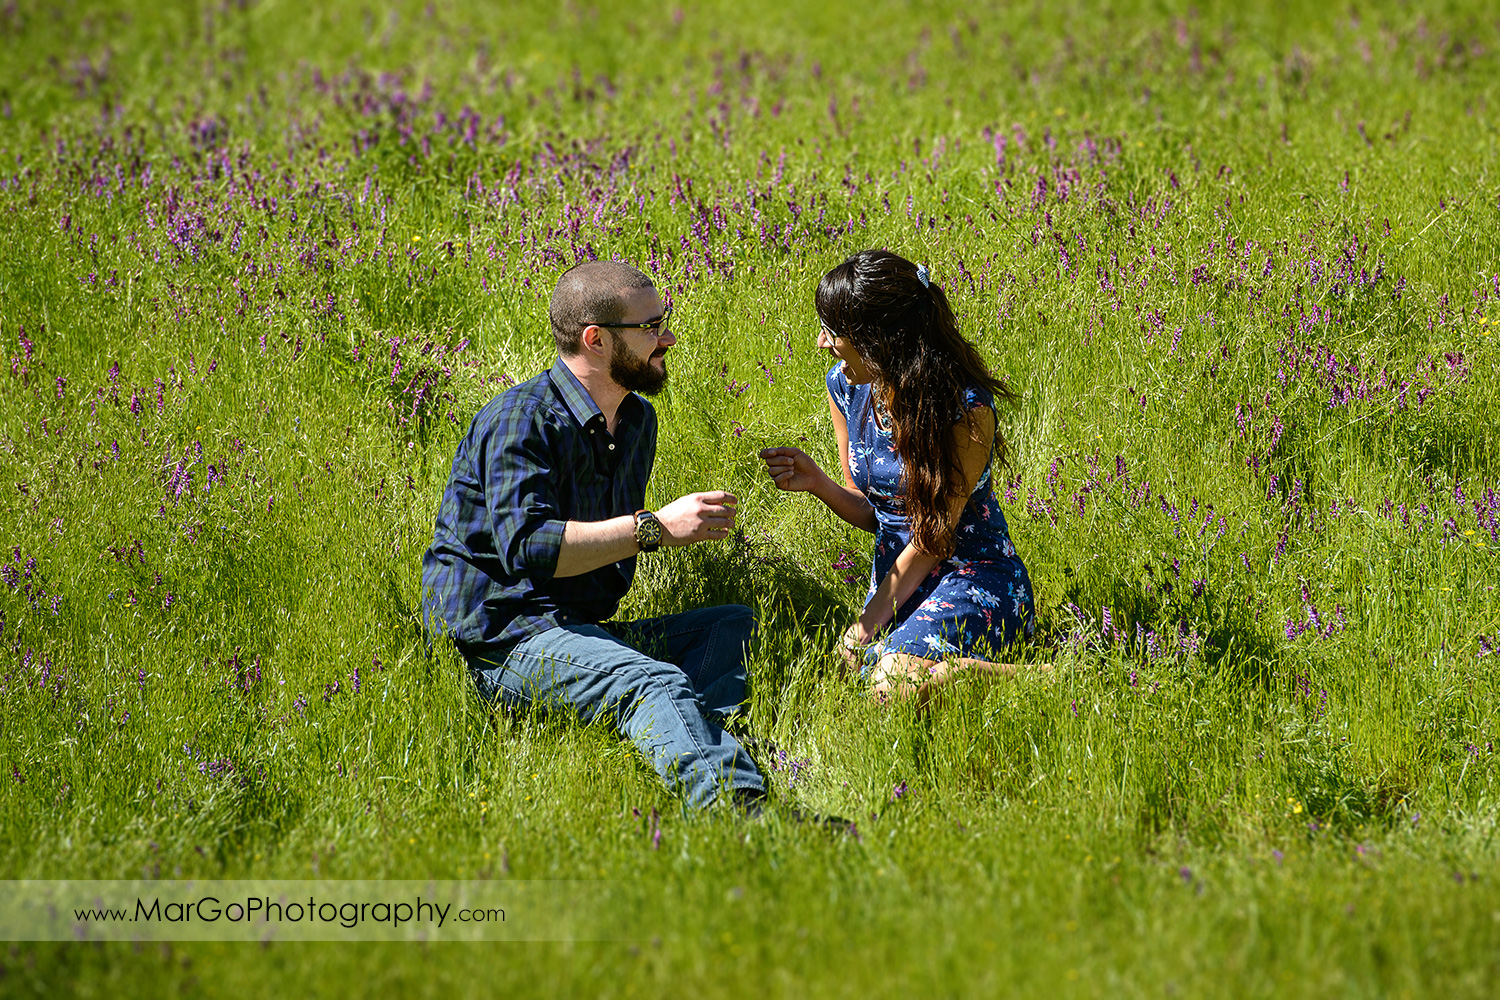 woman in blue dress and man in blue shirt sitting on the grass during engagement session at Sunol Regional Wilderness